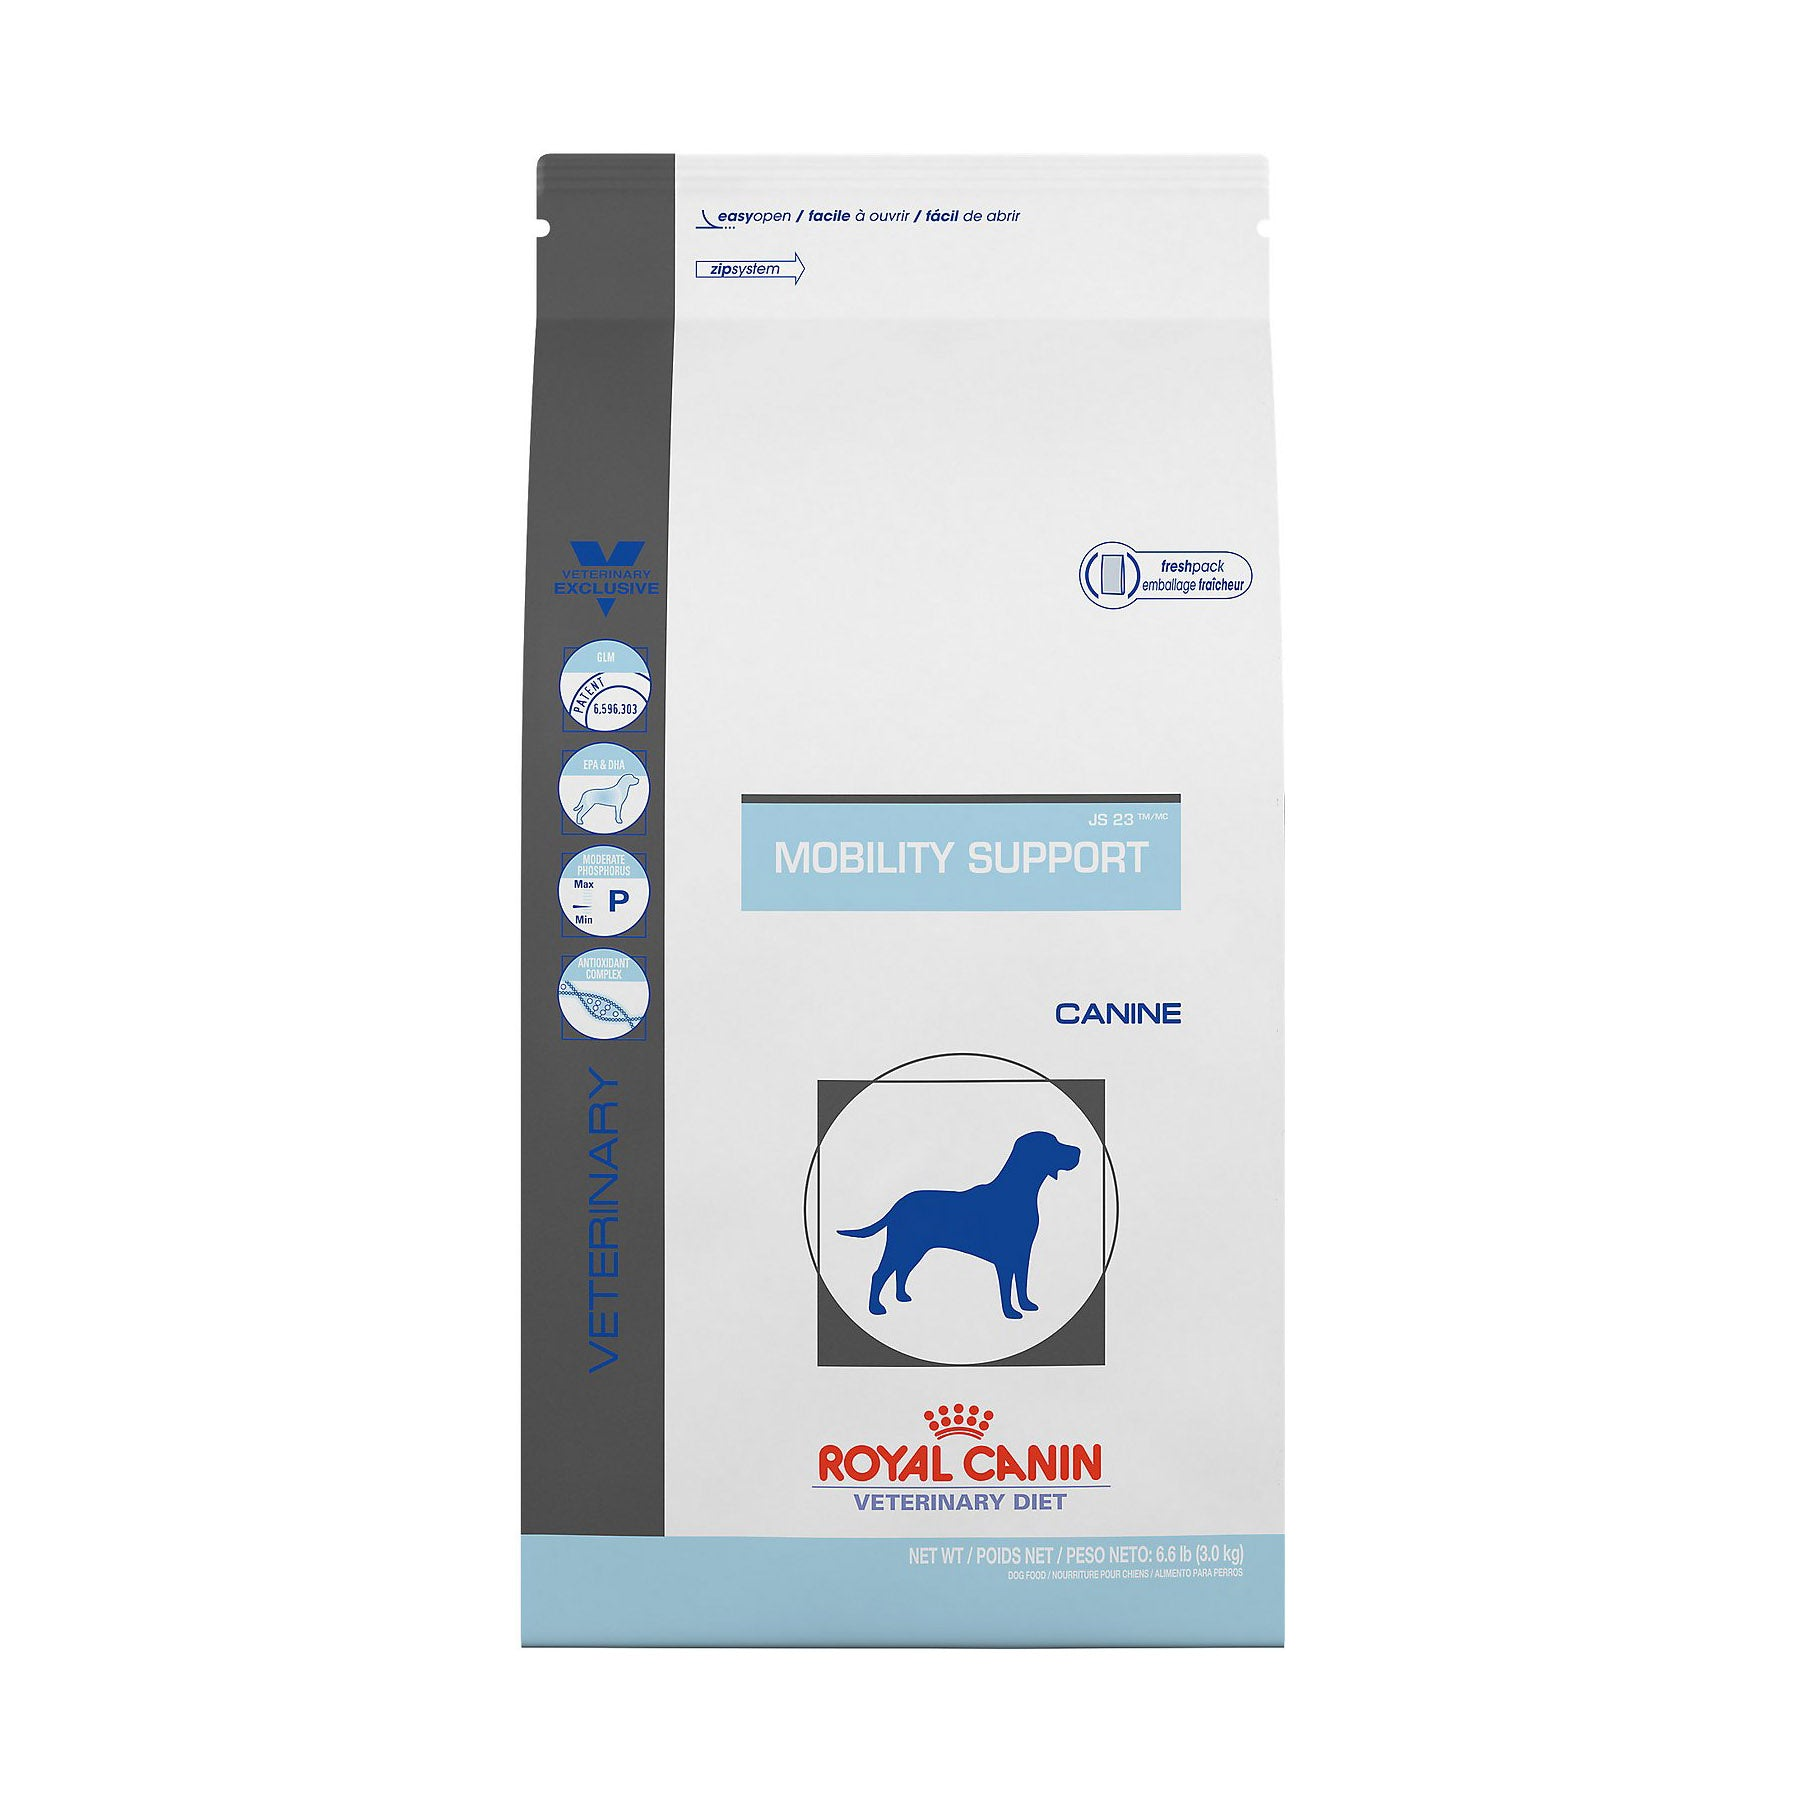 Royal Canin Veterinary Diet Canine Mobility Support JS Dry Dog Food at NJPetSupply.com